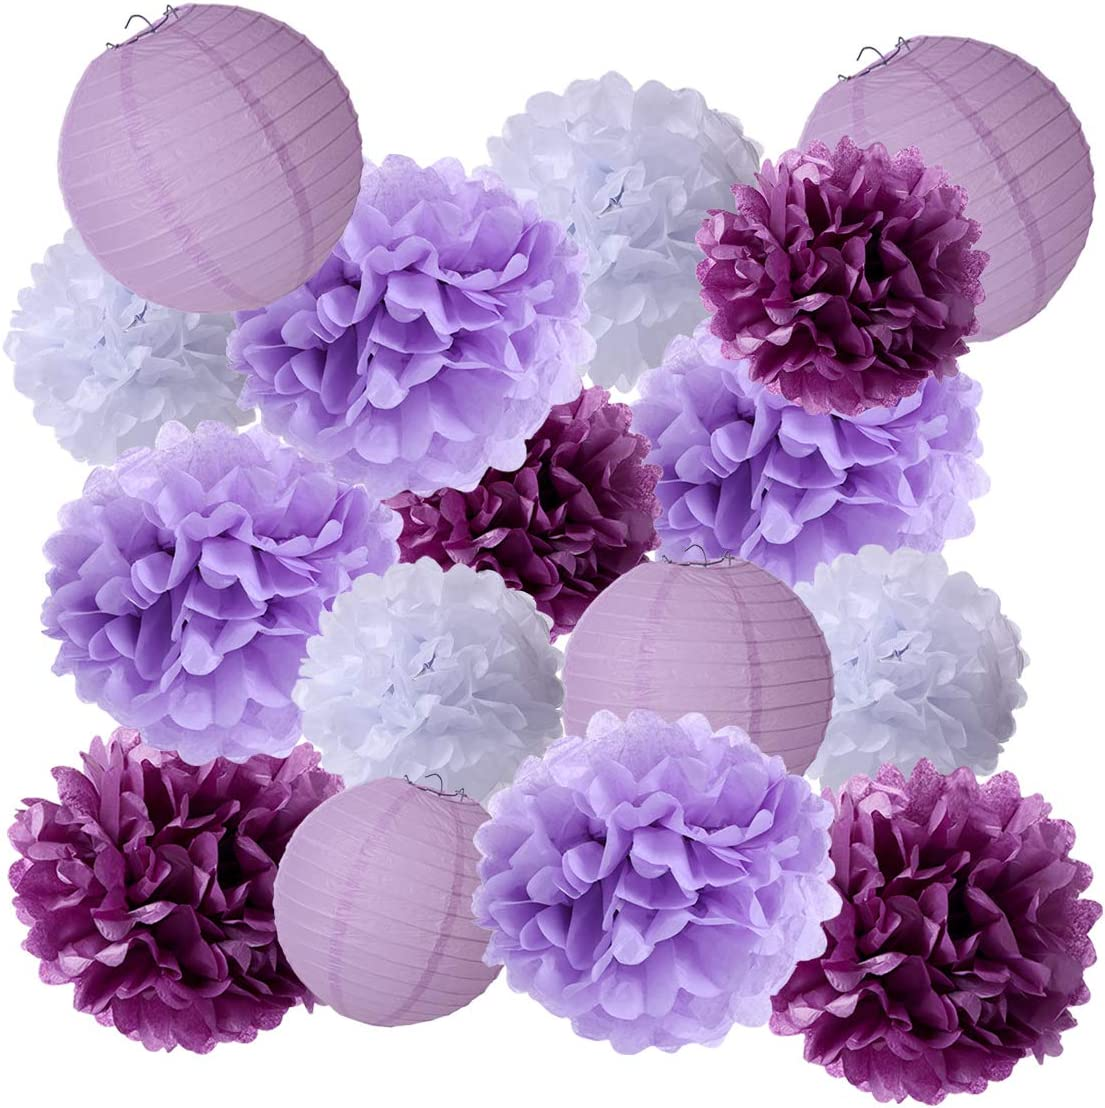 16 Pack Paper Flowers Pom Poms & Paper Lanterns Decorative Party Pack Tissue Paper Flower Kit for Wall Decor, Wedding Decorations&Birthday Baby Shower Festival Party Decorations White/Lavender/Purple